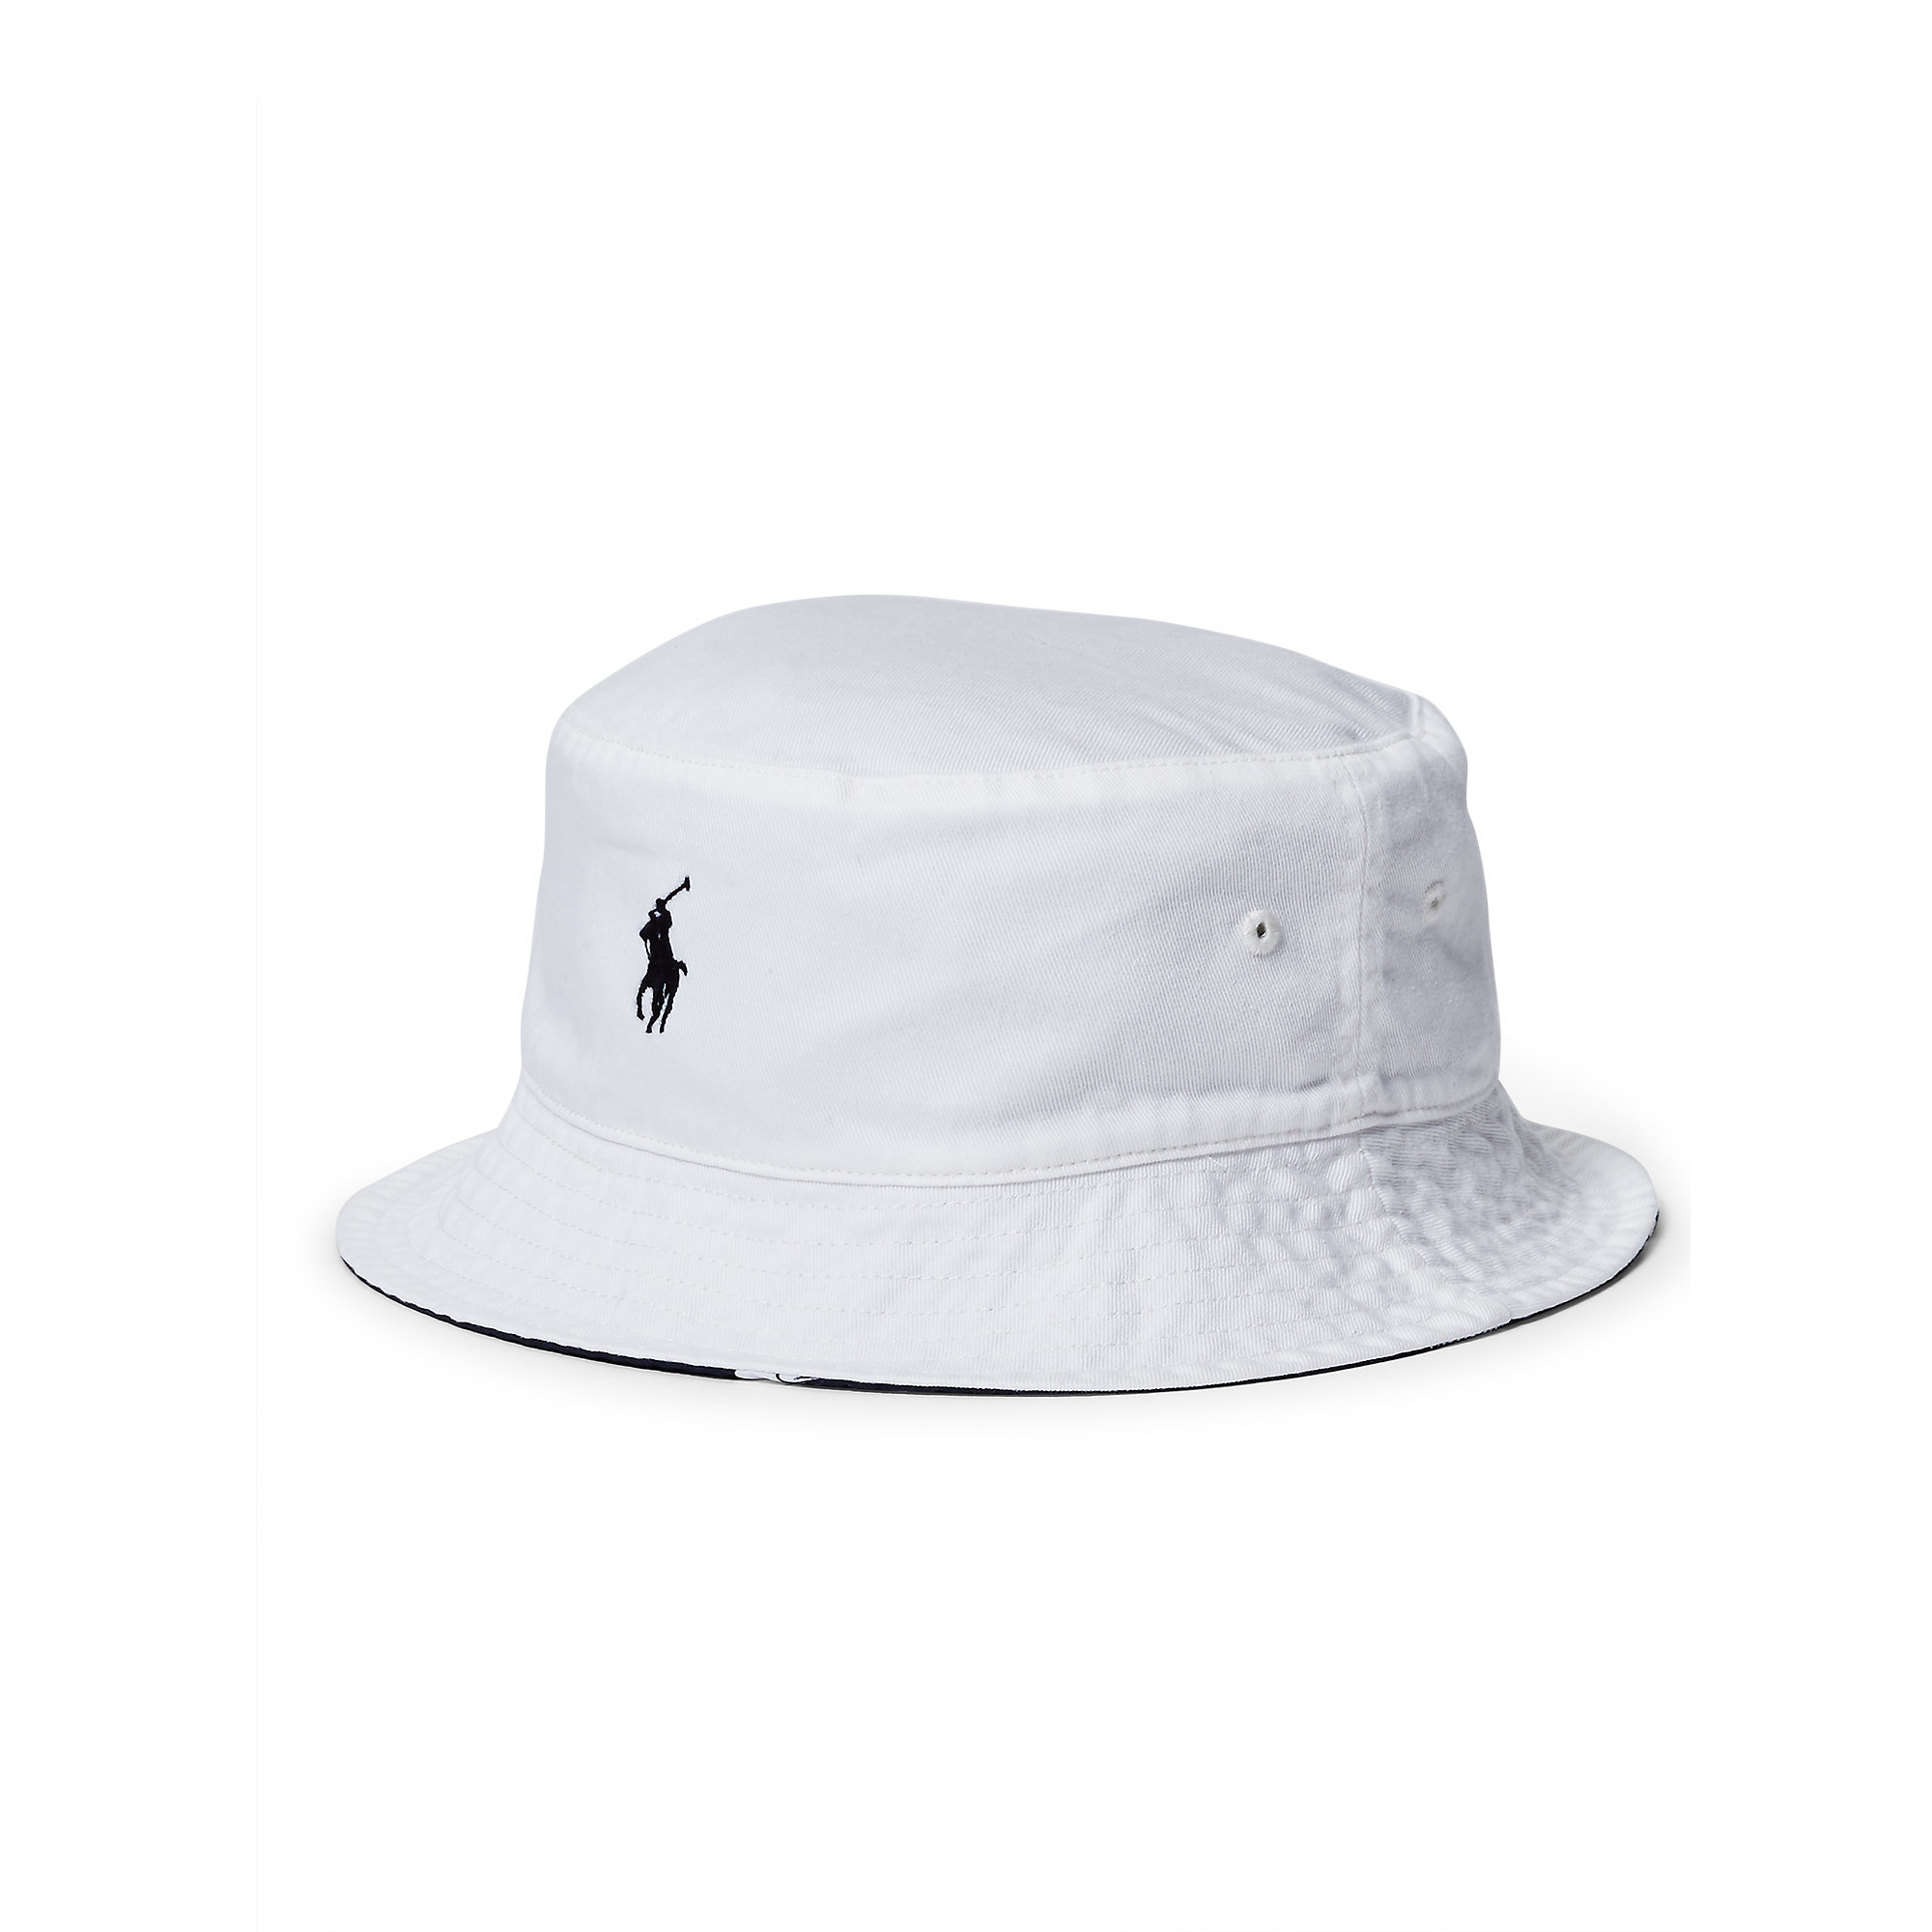 ca4a62e5 Polo Ralph Lauren Reversible Twill Bucket Hat in White for Men - Lyst